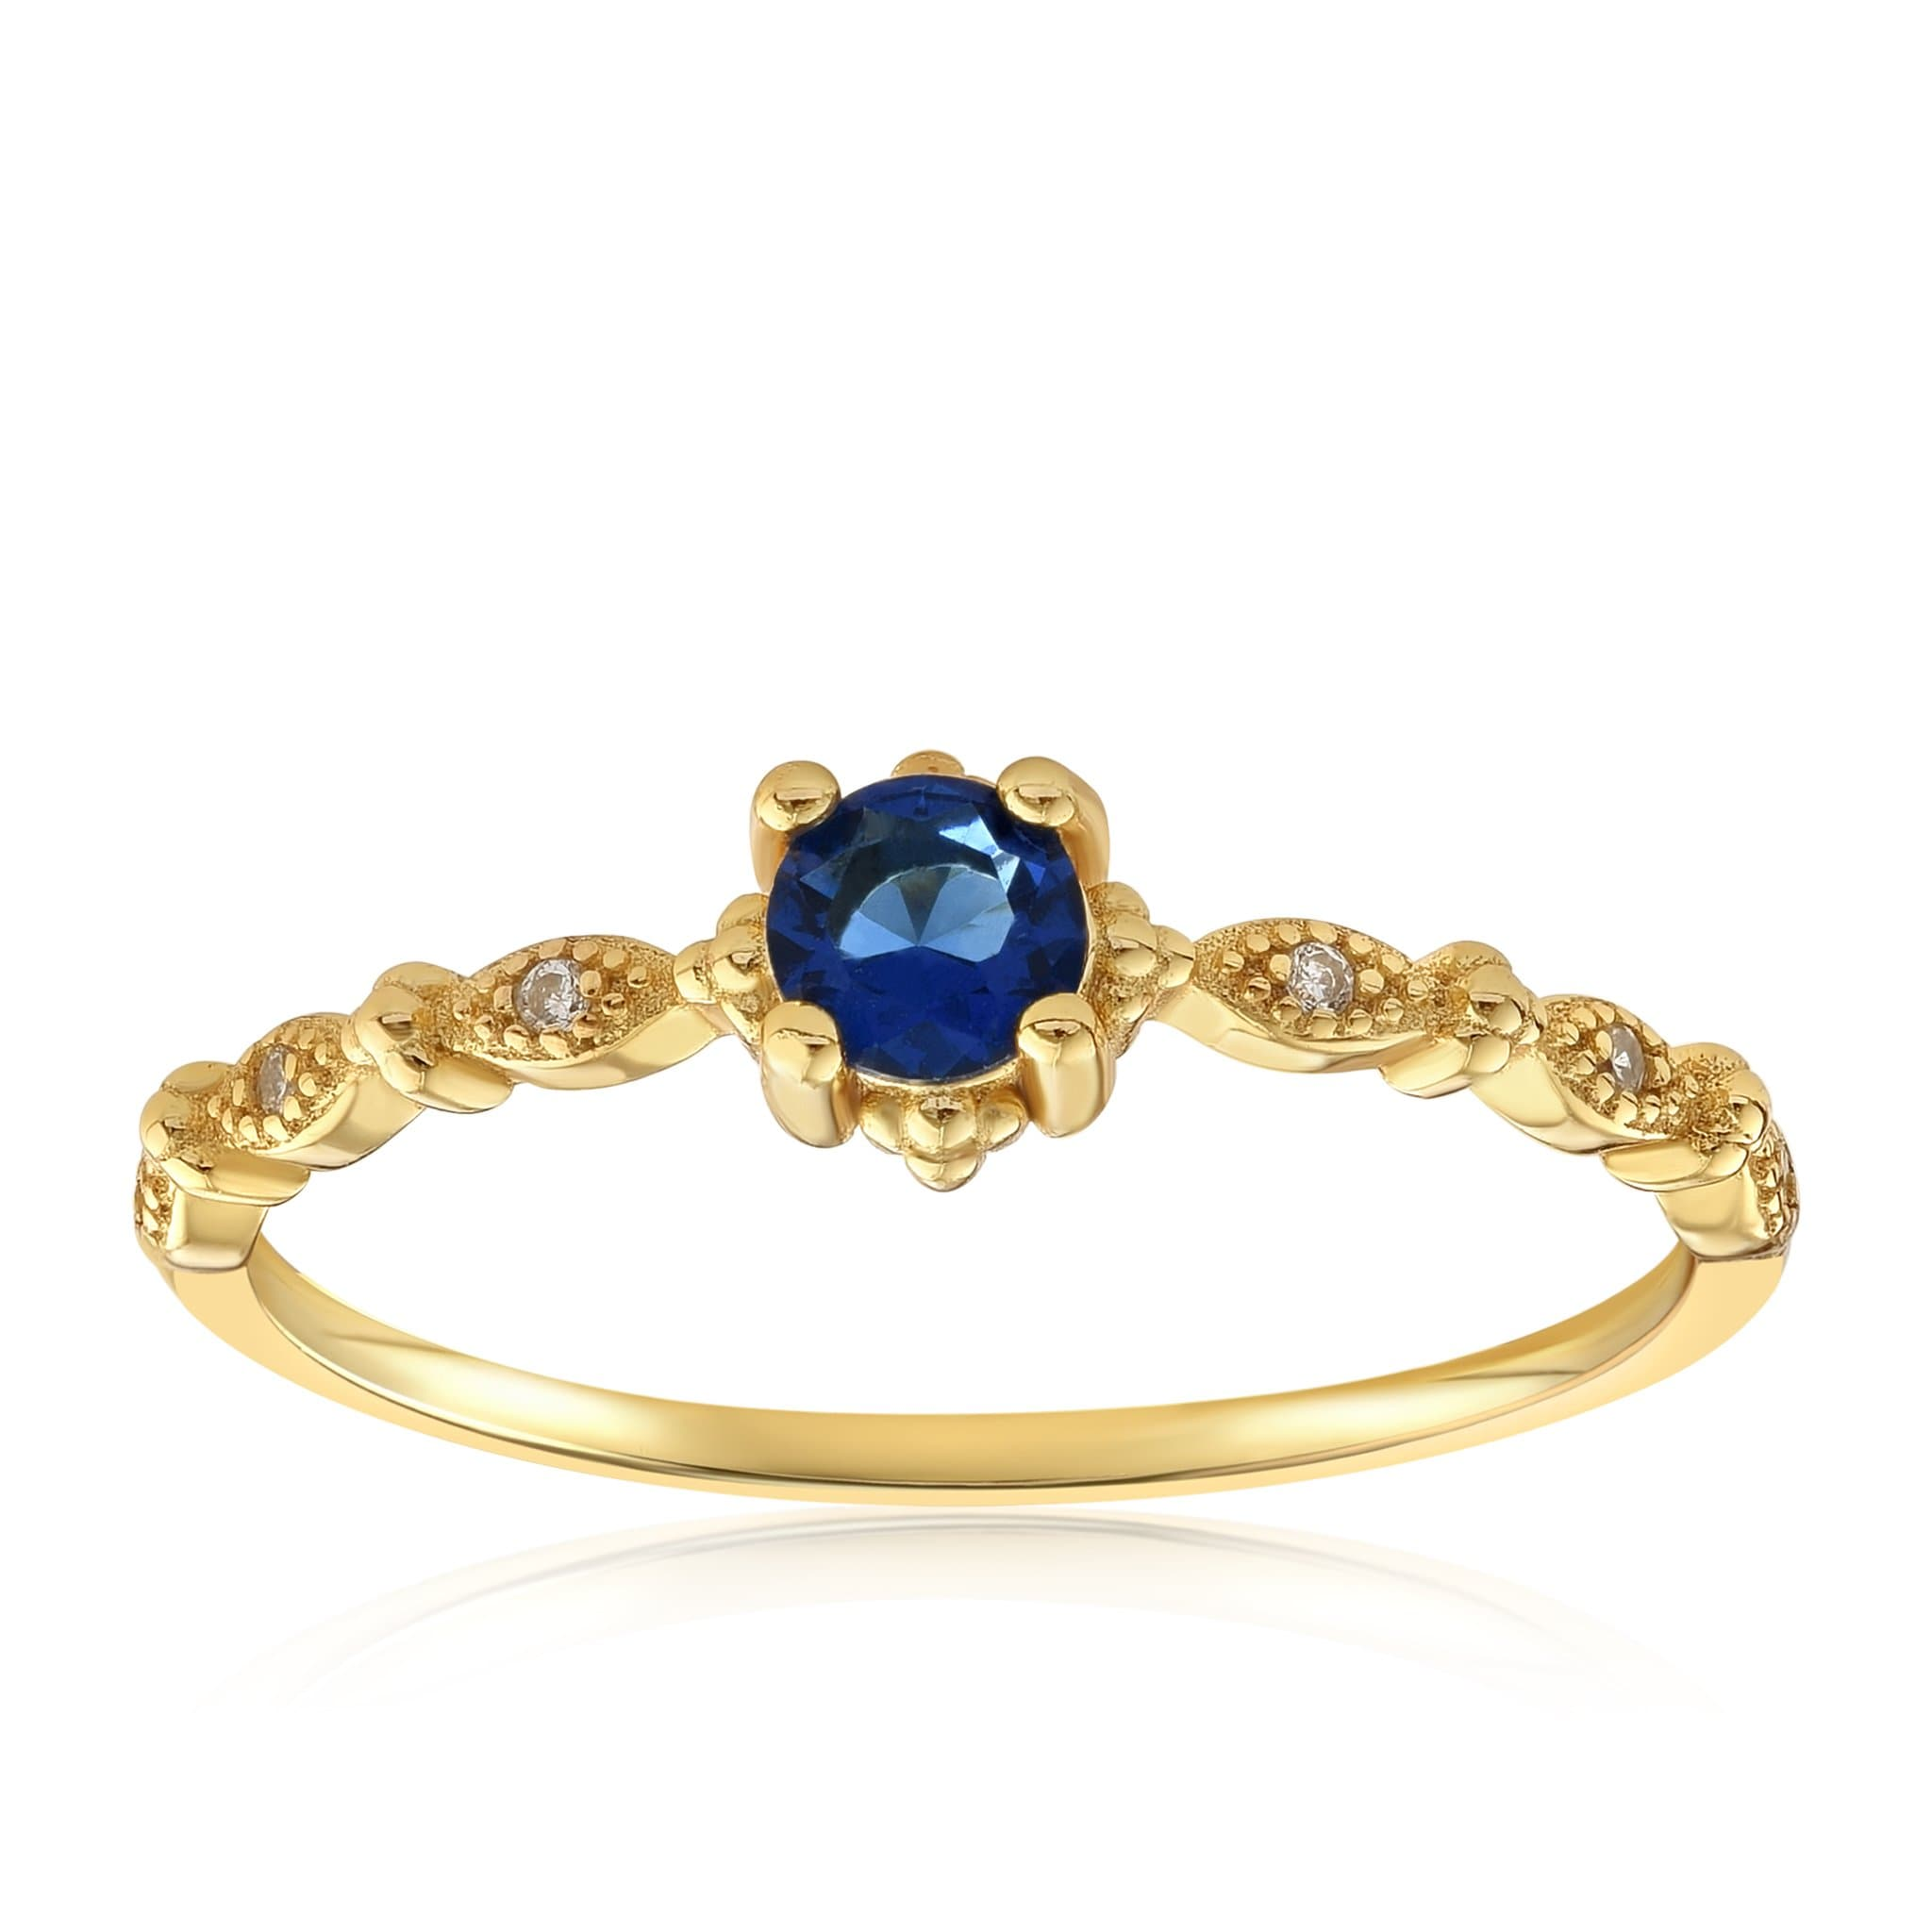 Garen Ring Blue Gemstone - Front View Facing Up - 18K Yellow Gold Vermeil